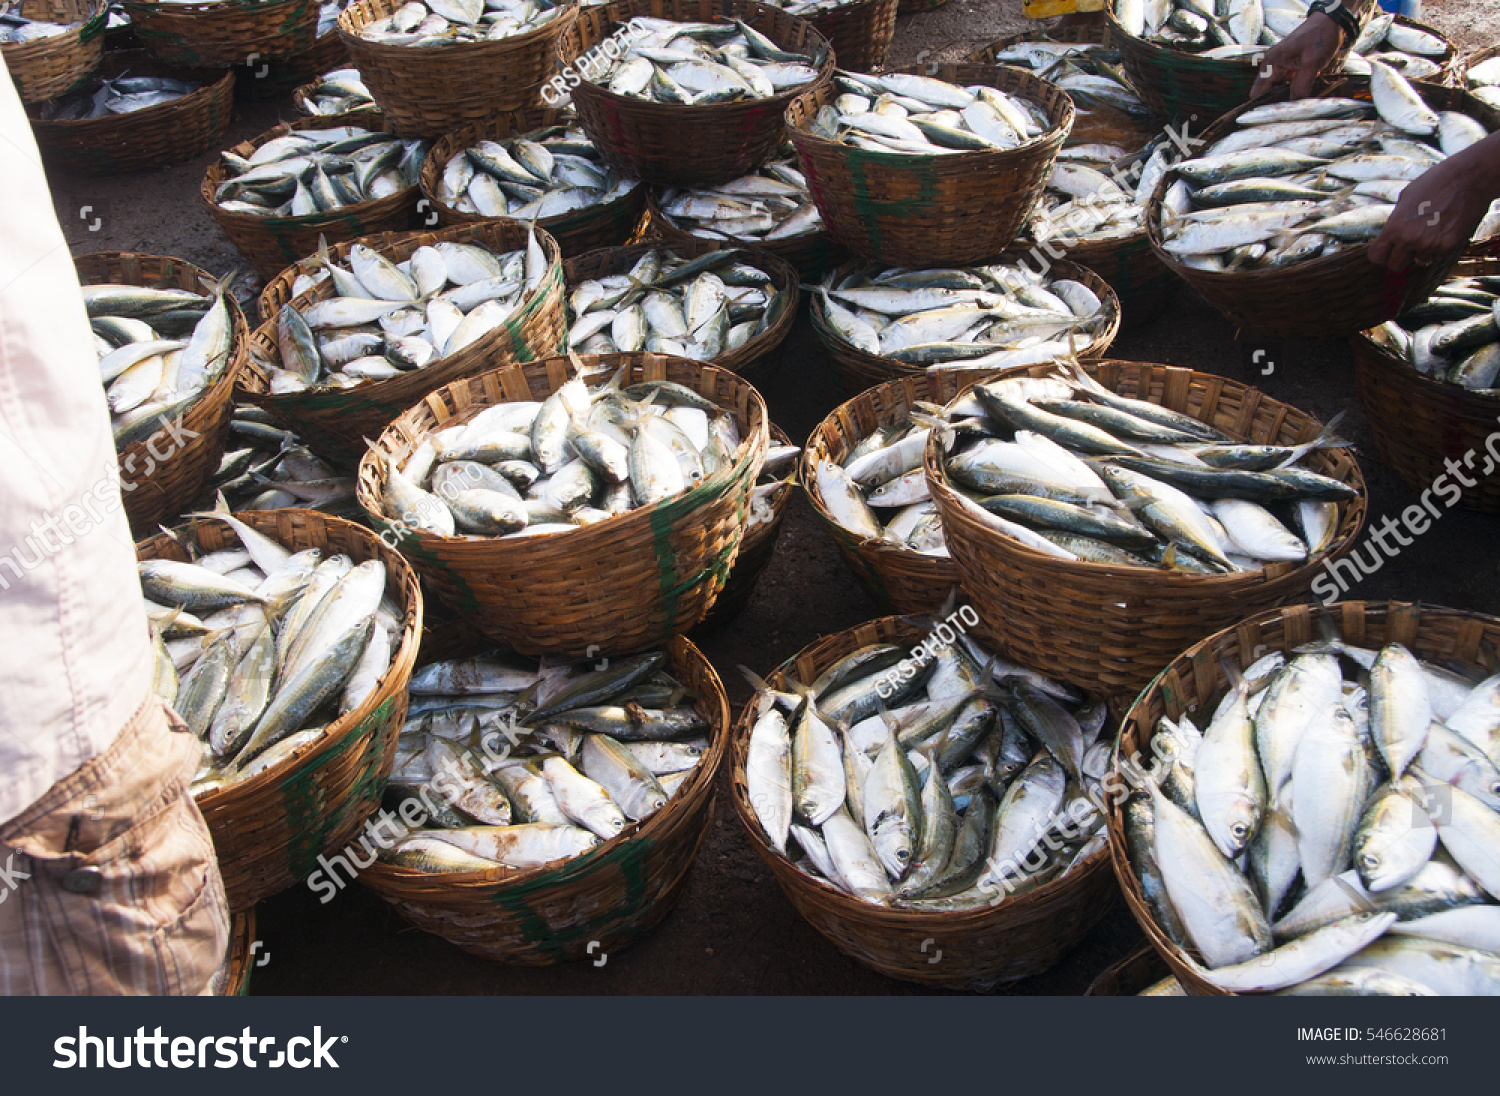 Margao goa india 22 september crowd stock photo 546628681 for Wholesale fish market near me